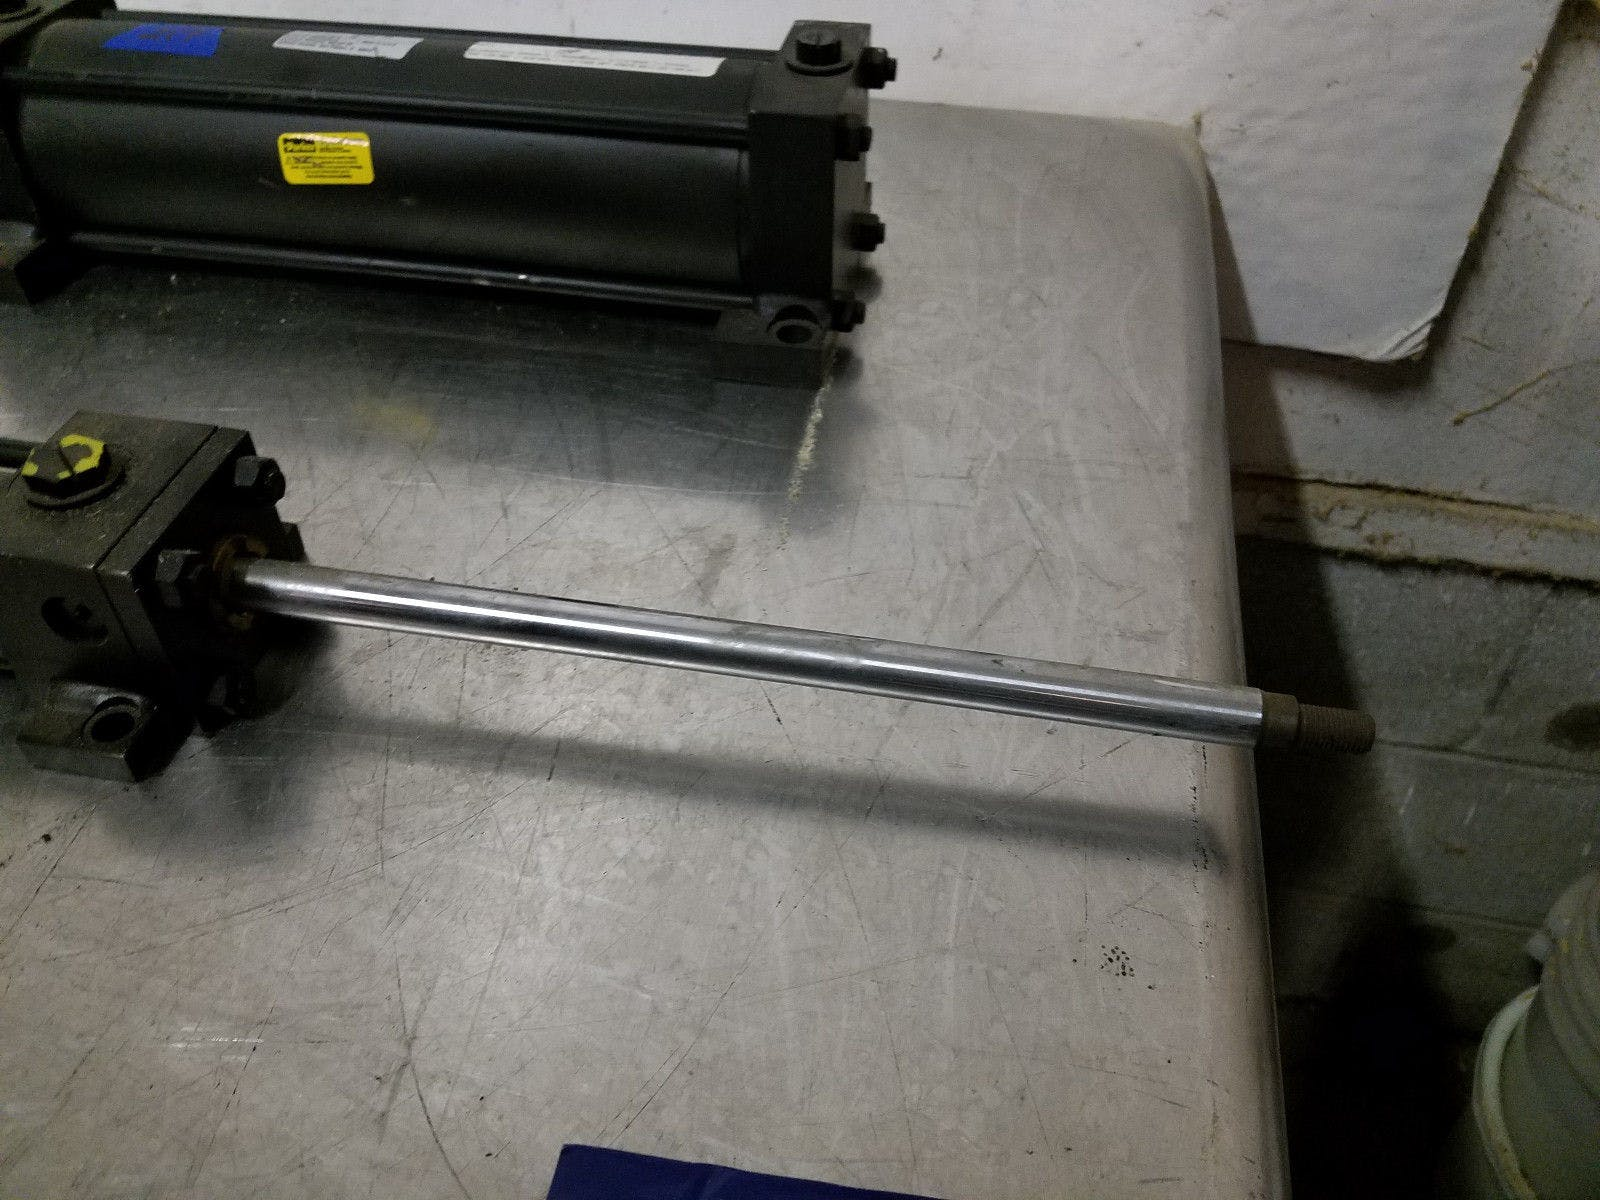 Parker Series 2H 01.50 CKC2HLT155A14AC 11.0 3000 Psi Hyd Hydraulic Cylinder New - sold by Jak's Restaurant Supply